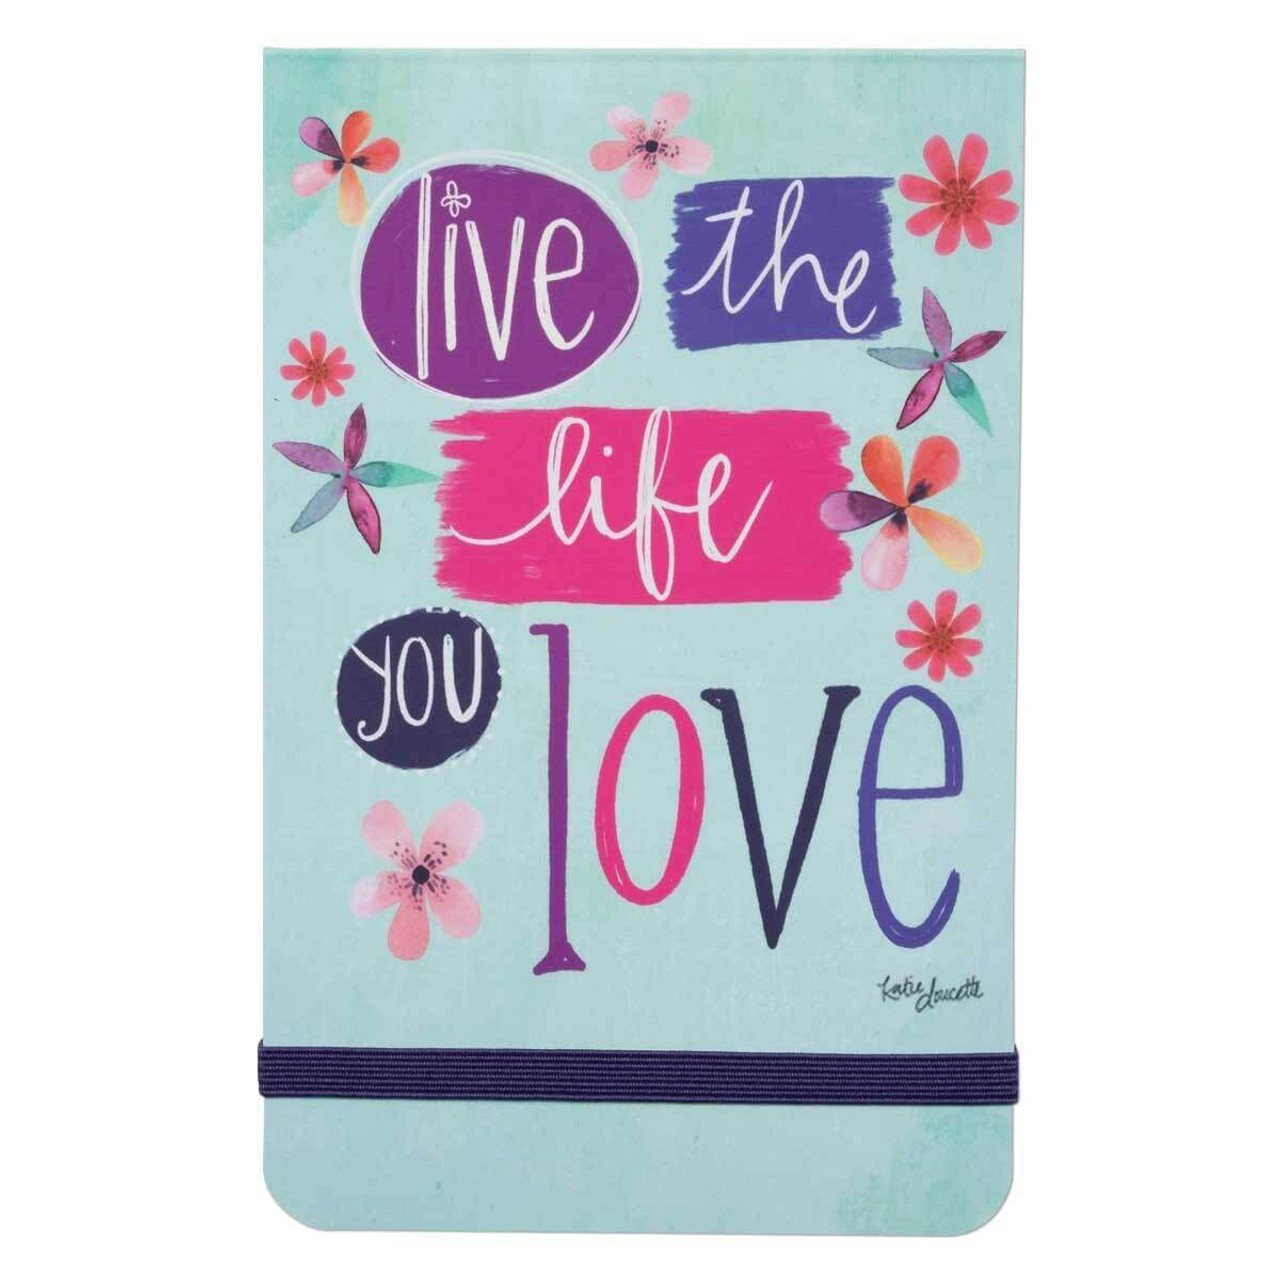 Small, Sweet, and Compact; Our pocket notepads are great to take anywhere. The cover features fun, floral artwork and a sweet inspirational message. Featuring artwork by Katie Doucette.  live the life of love sentiment 3 1/2(W) x 5 1/2(H) 136 lined pages Elastic band closure